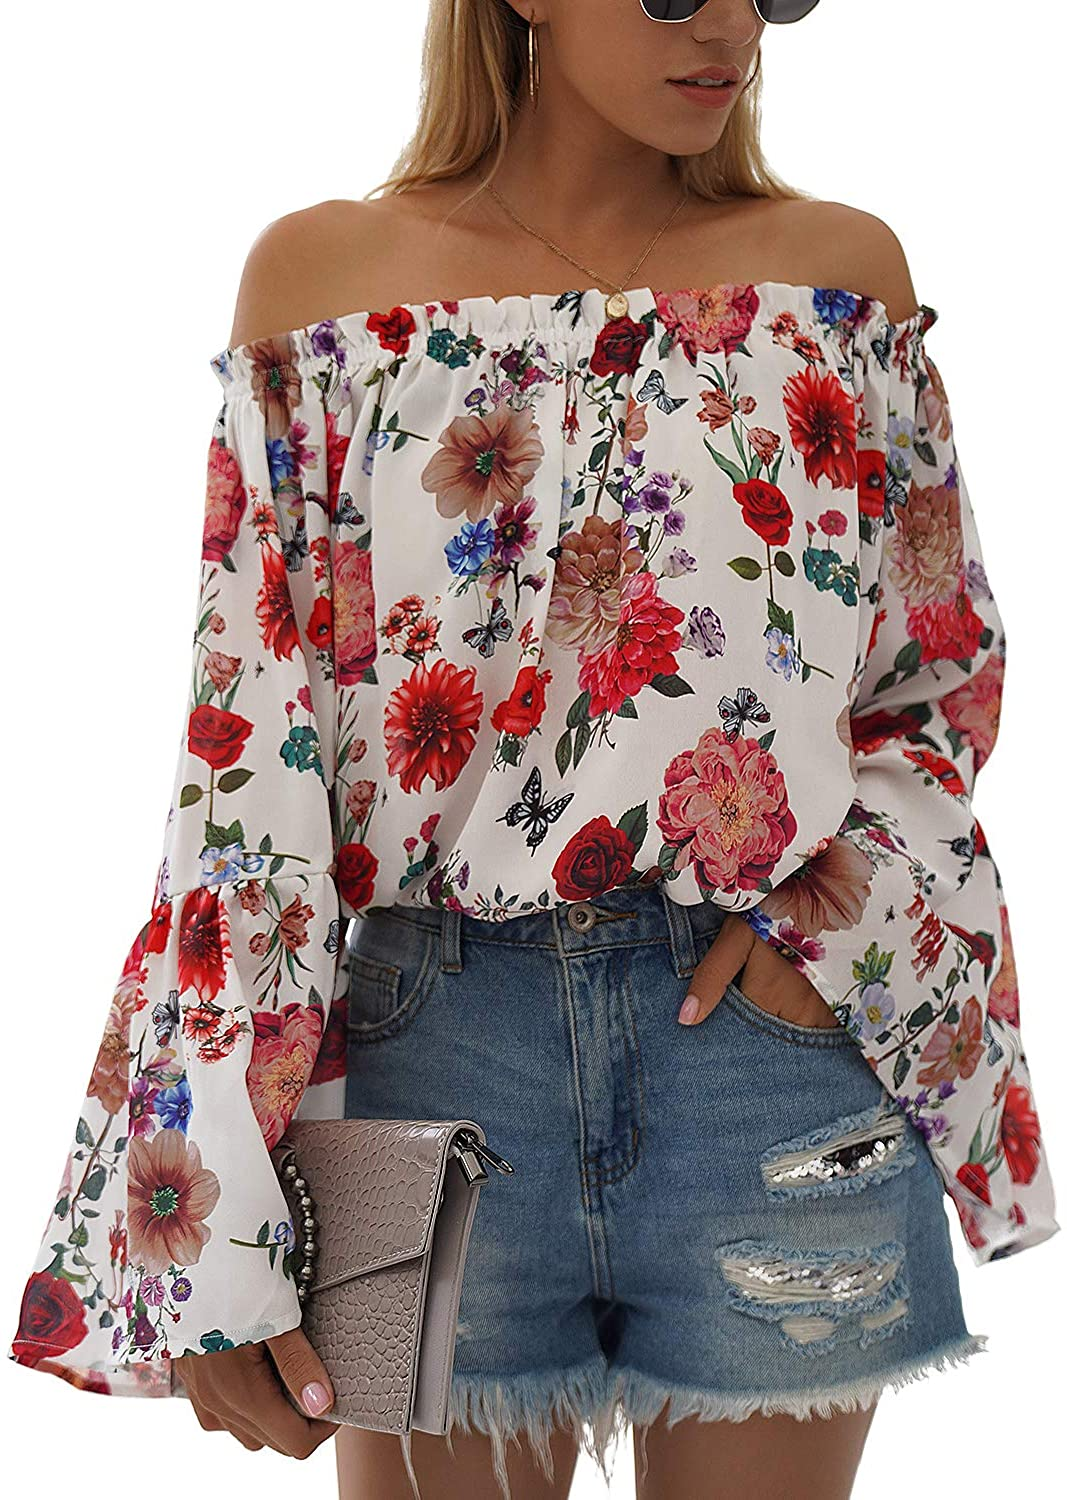 BMJL Women's Cute Off The Shoulder Tops Long Sleeve Hawaiian Shirts Loose Floral Blouse Tees